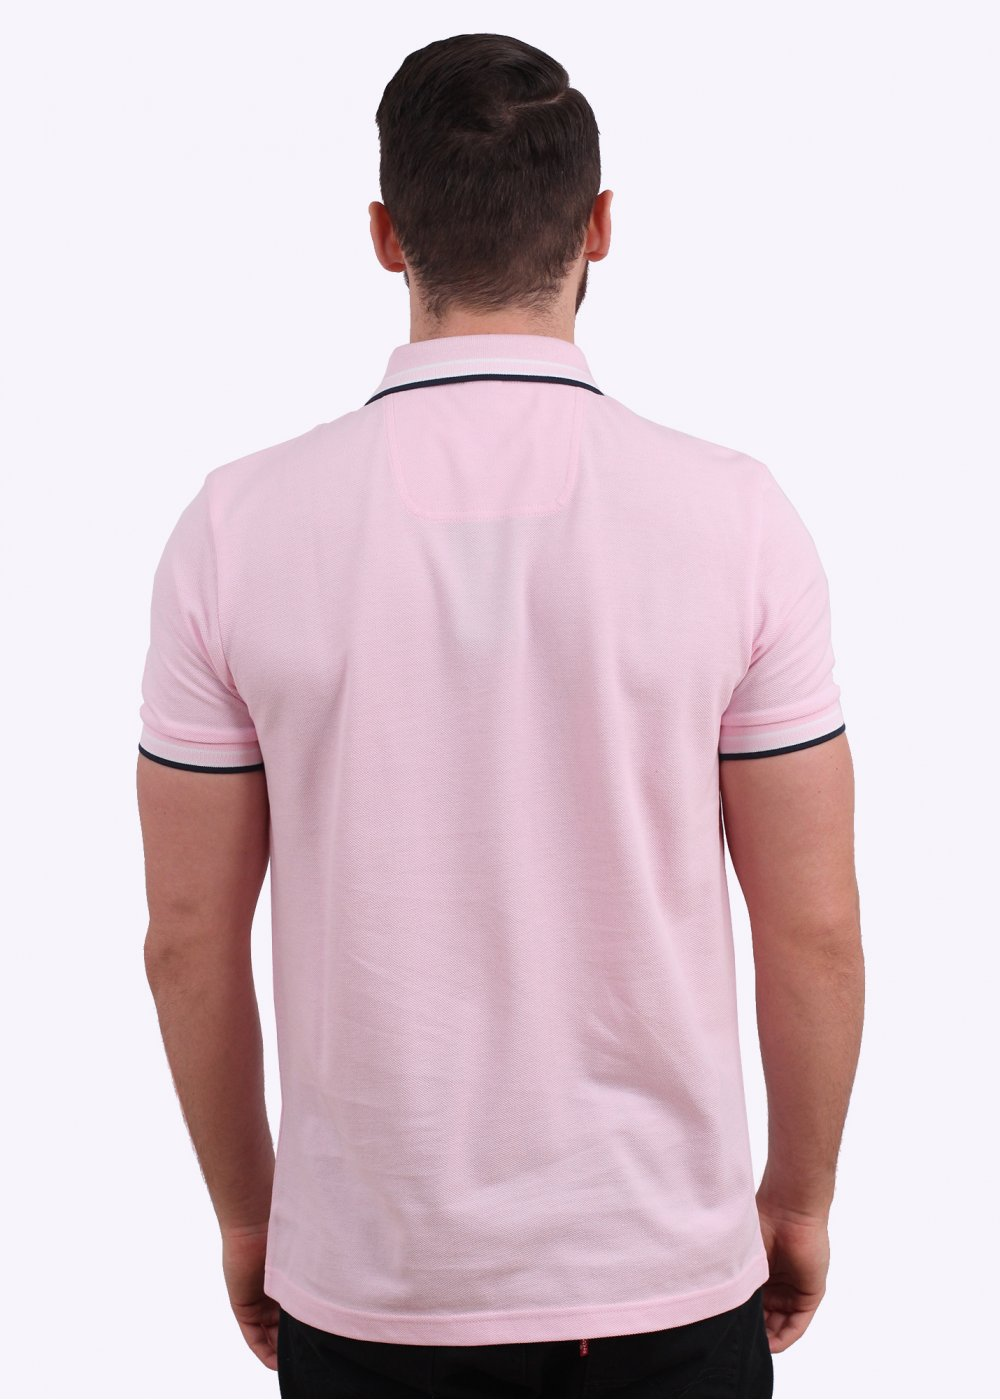 Hugo boss green paddy polo shirt bright pink for Hugo boss green polo shirt sale